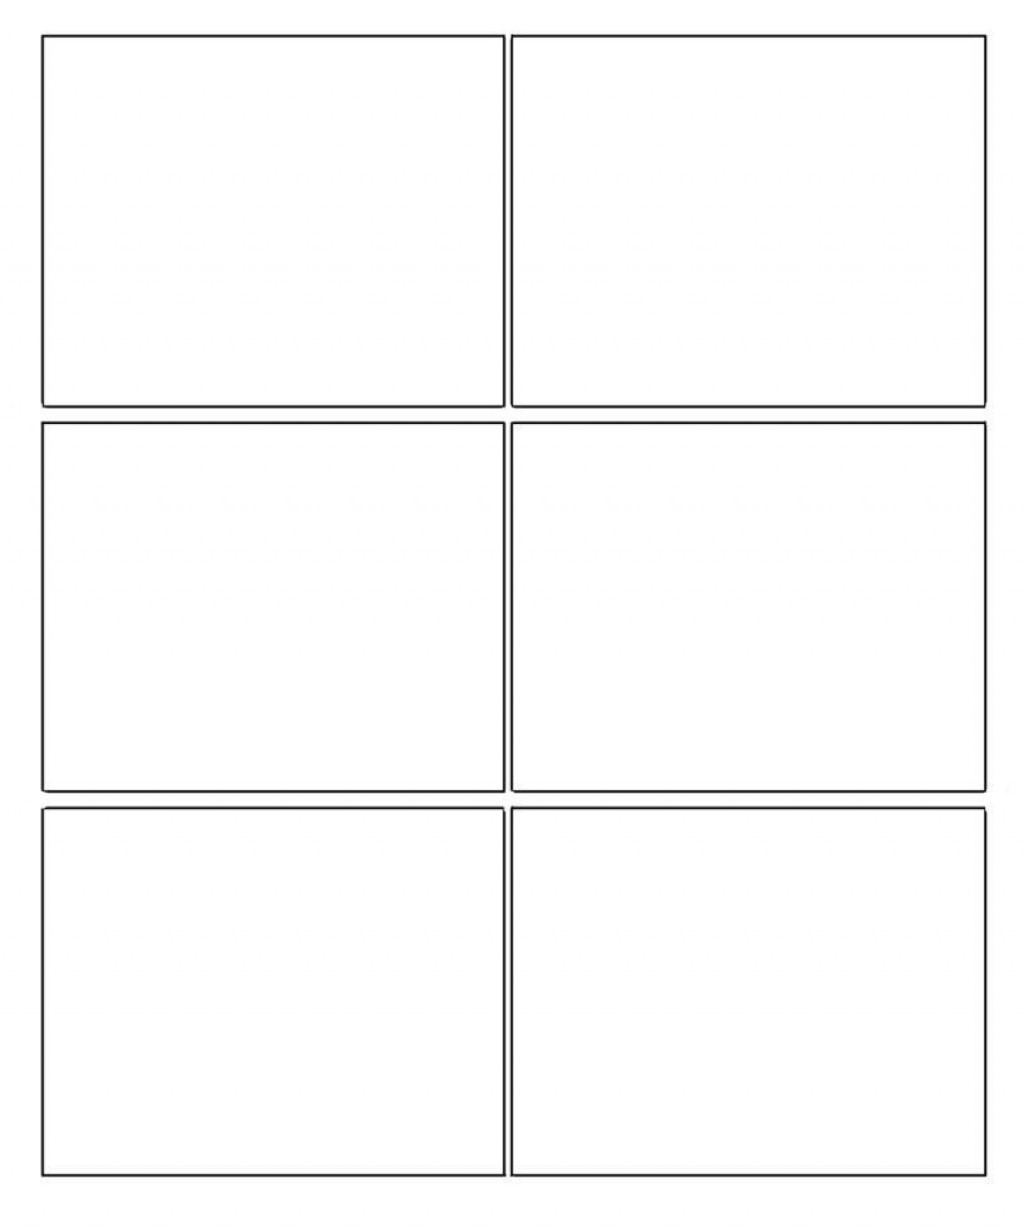 007 Amazing Comic Strip Template Word Doc Image Large